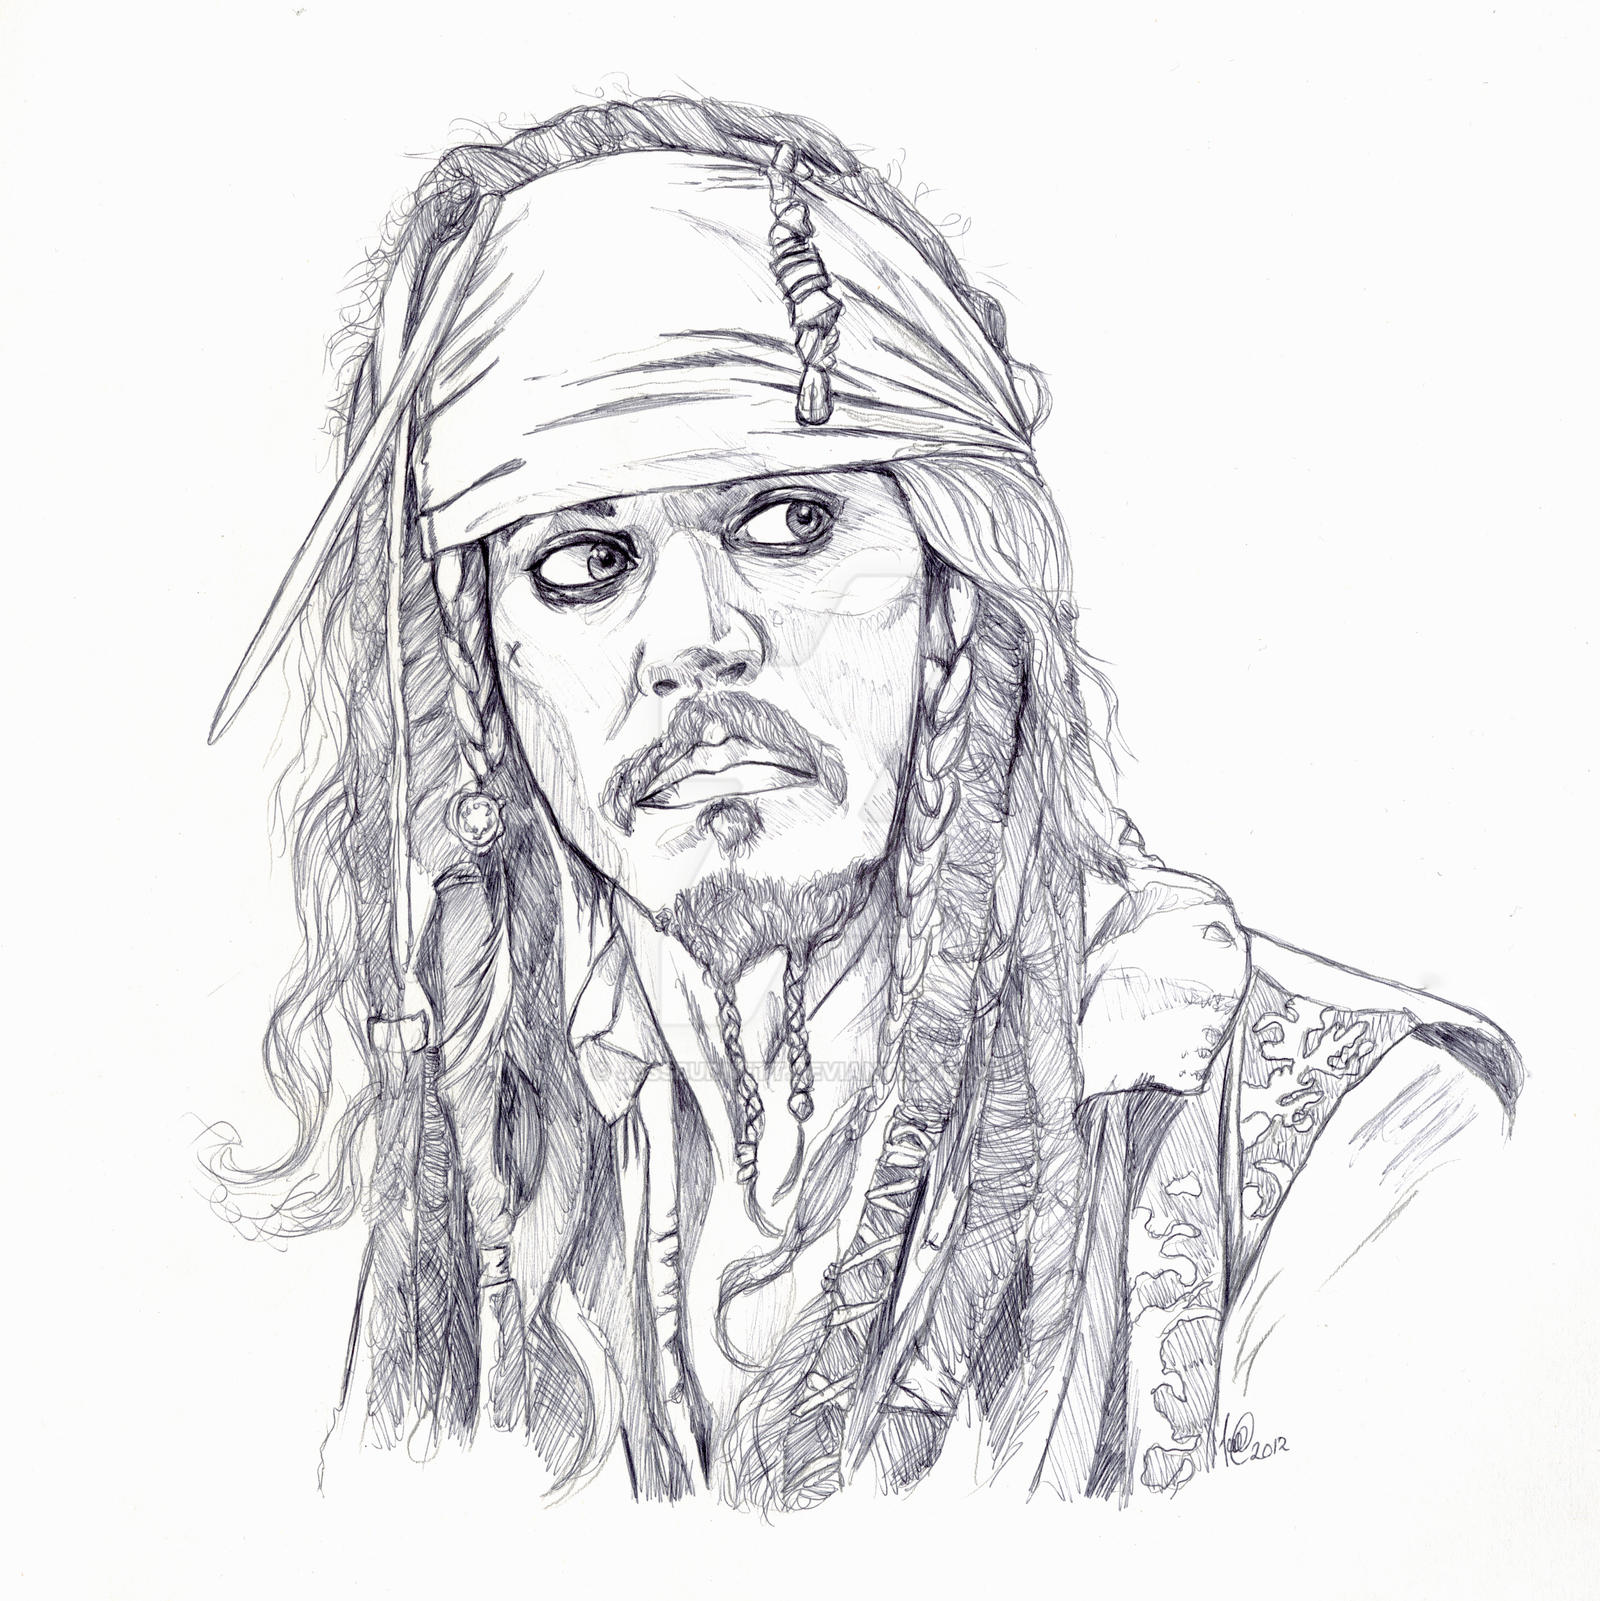 Jacksparrow by jessburnett on DeviantArt